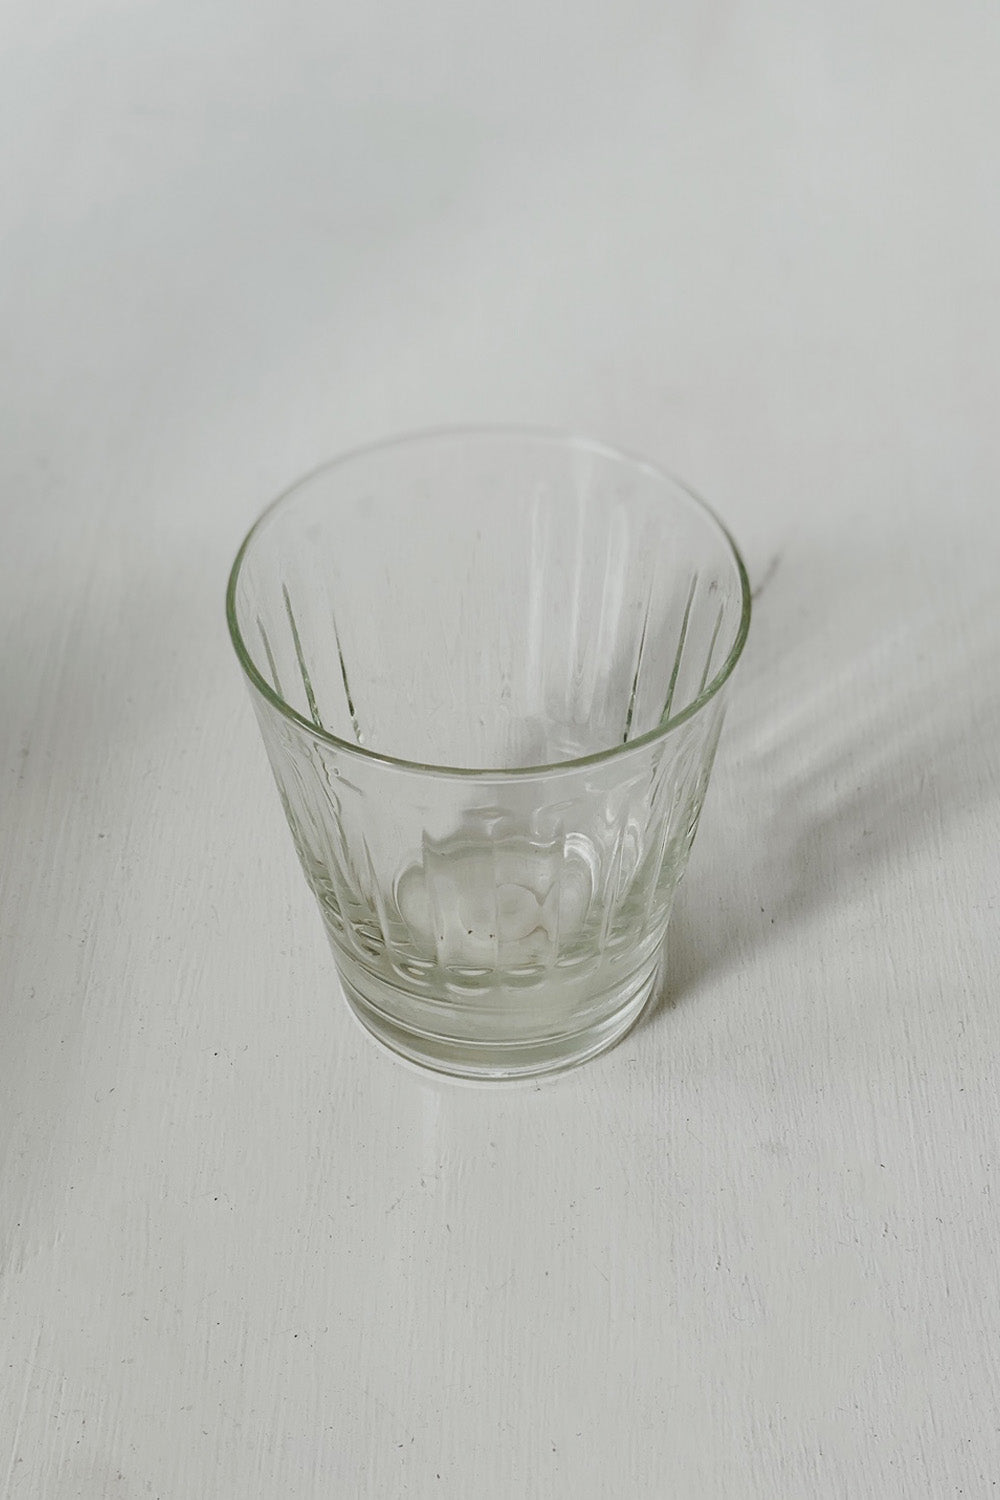 Japanese Drinking Glasses